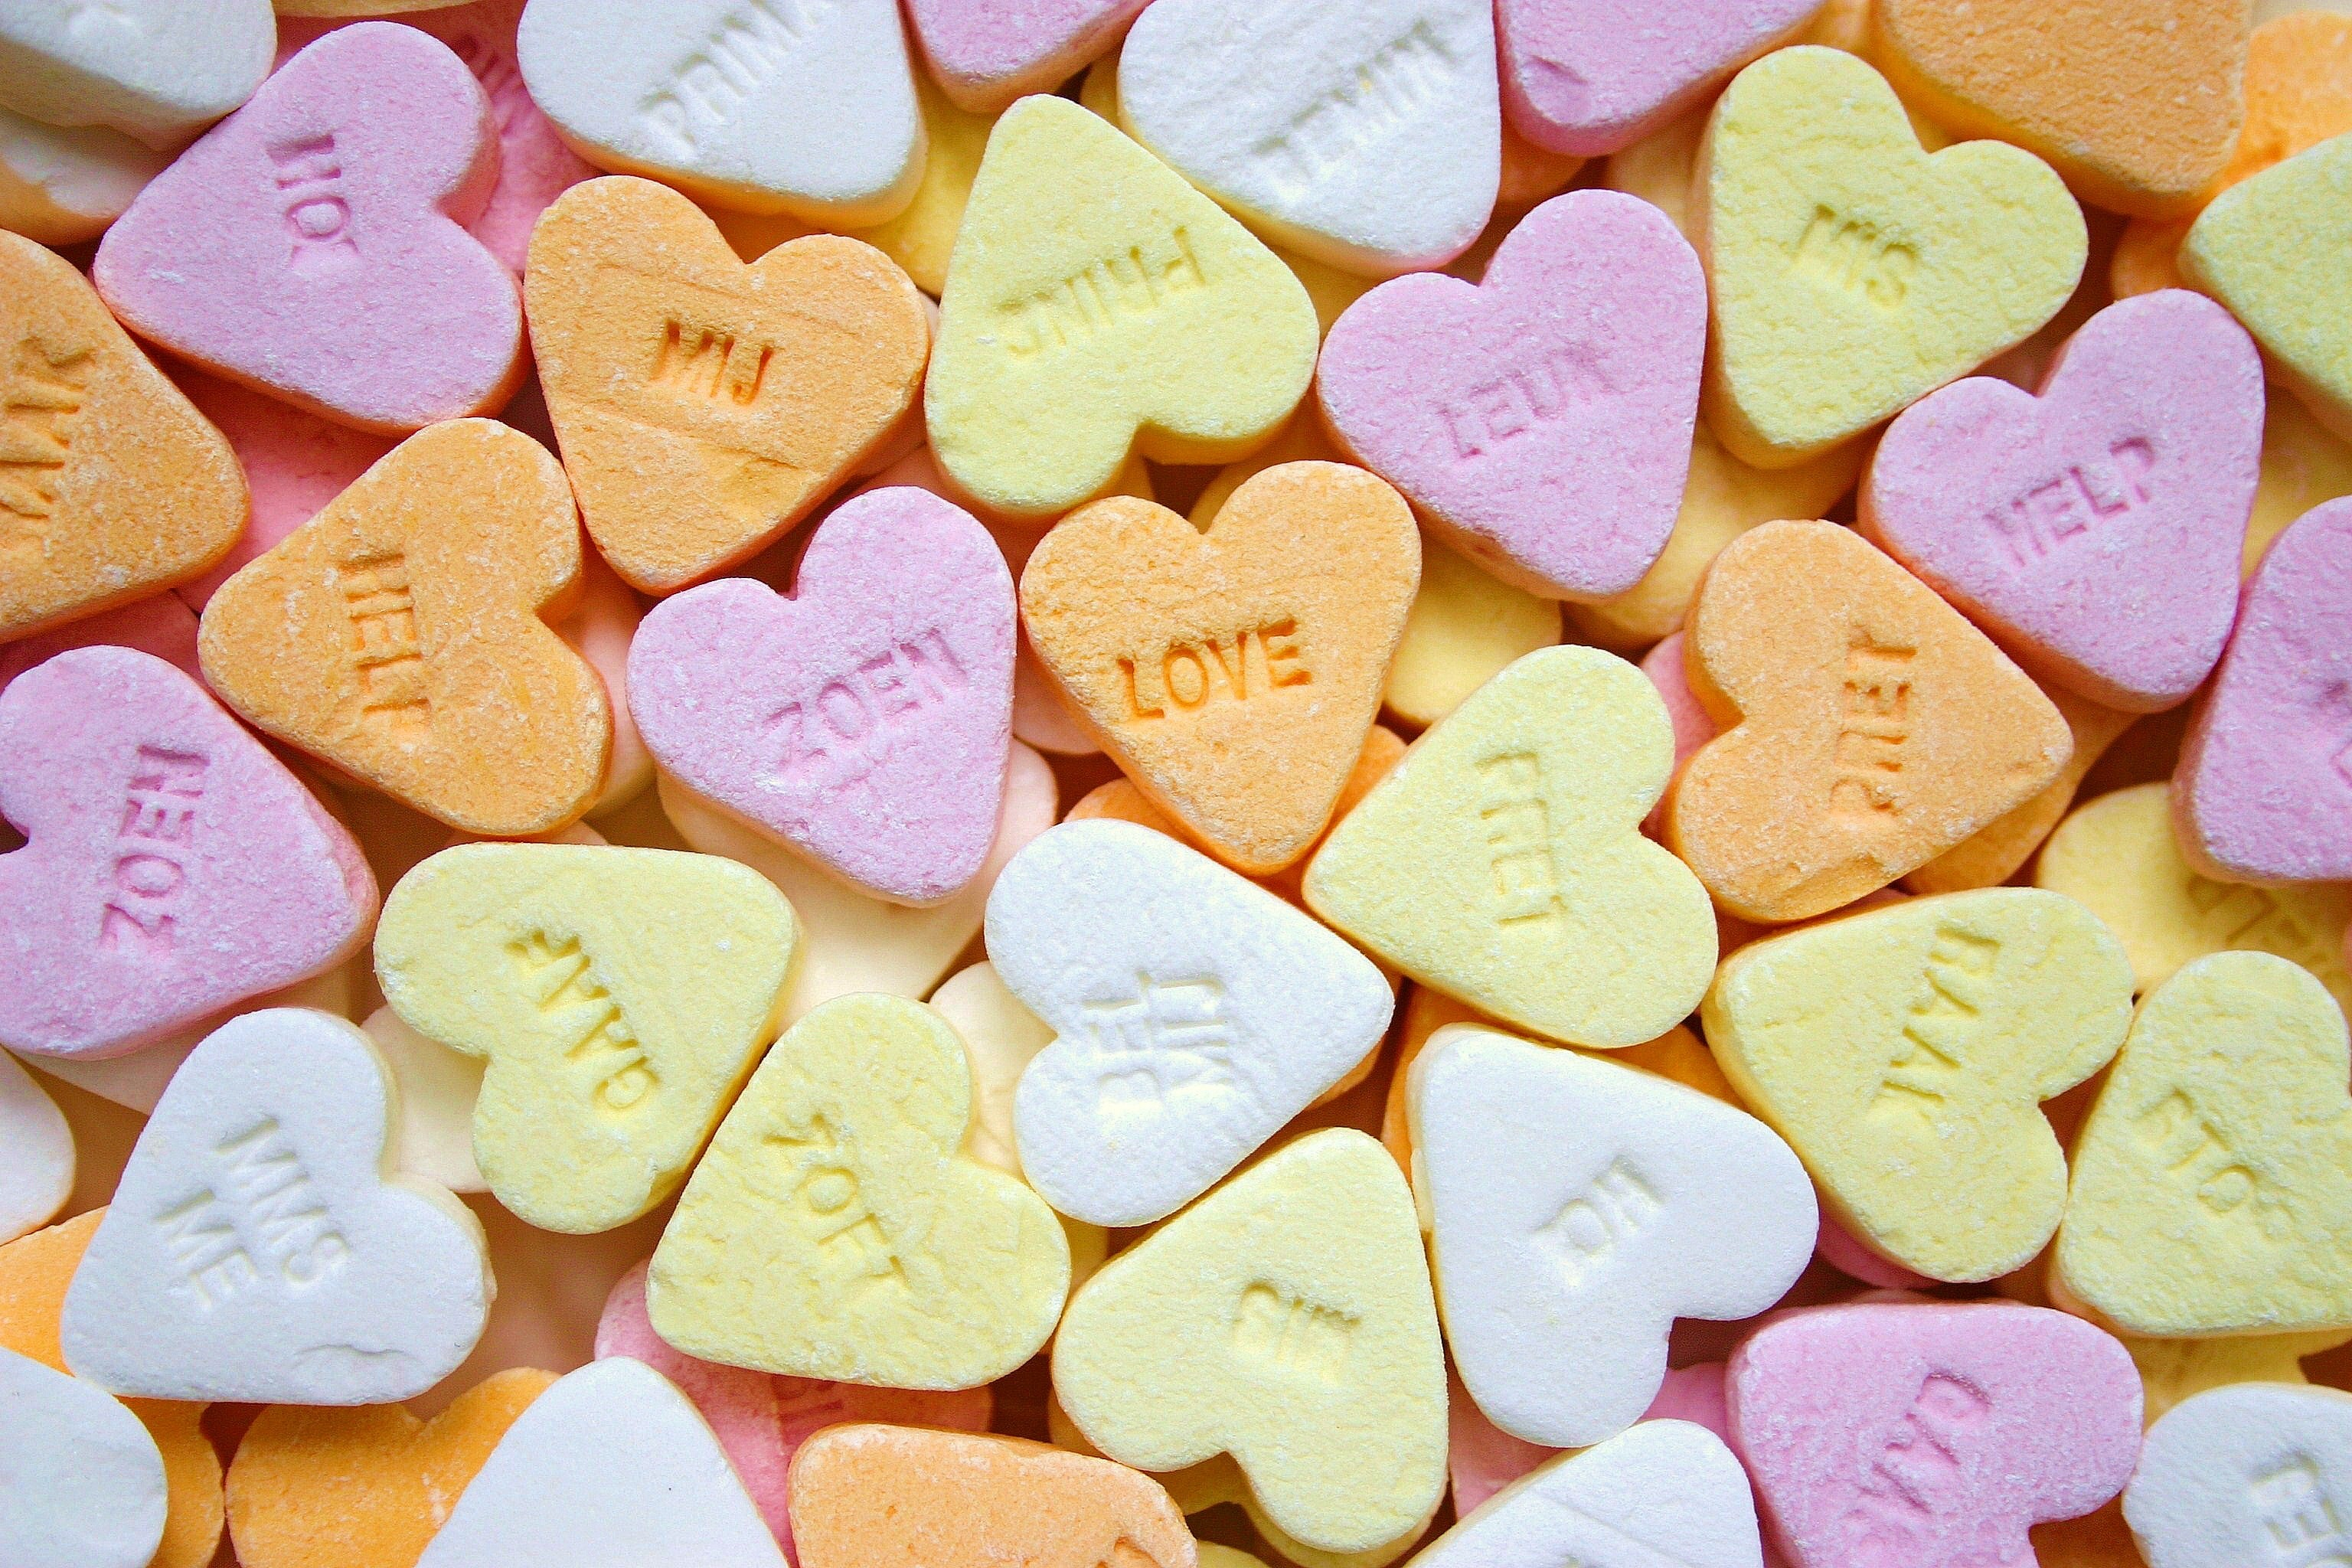 Yellow Pink Orange and White Loves Heart Candies, Candy, Romance, Sweet, Sugar, HQ Photo